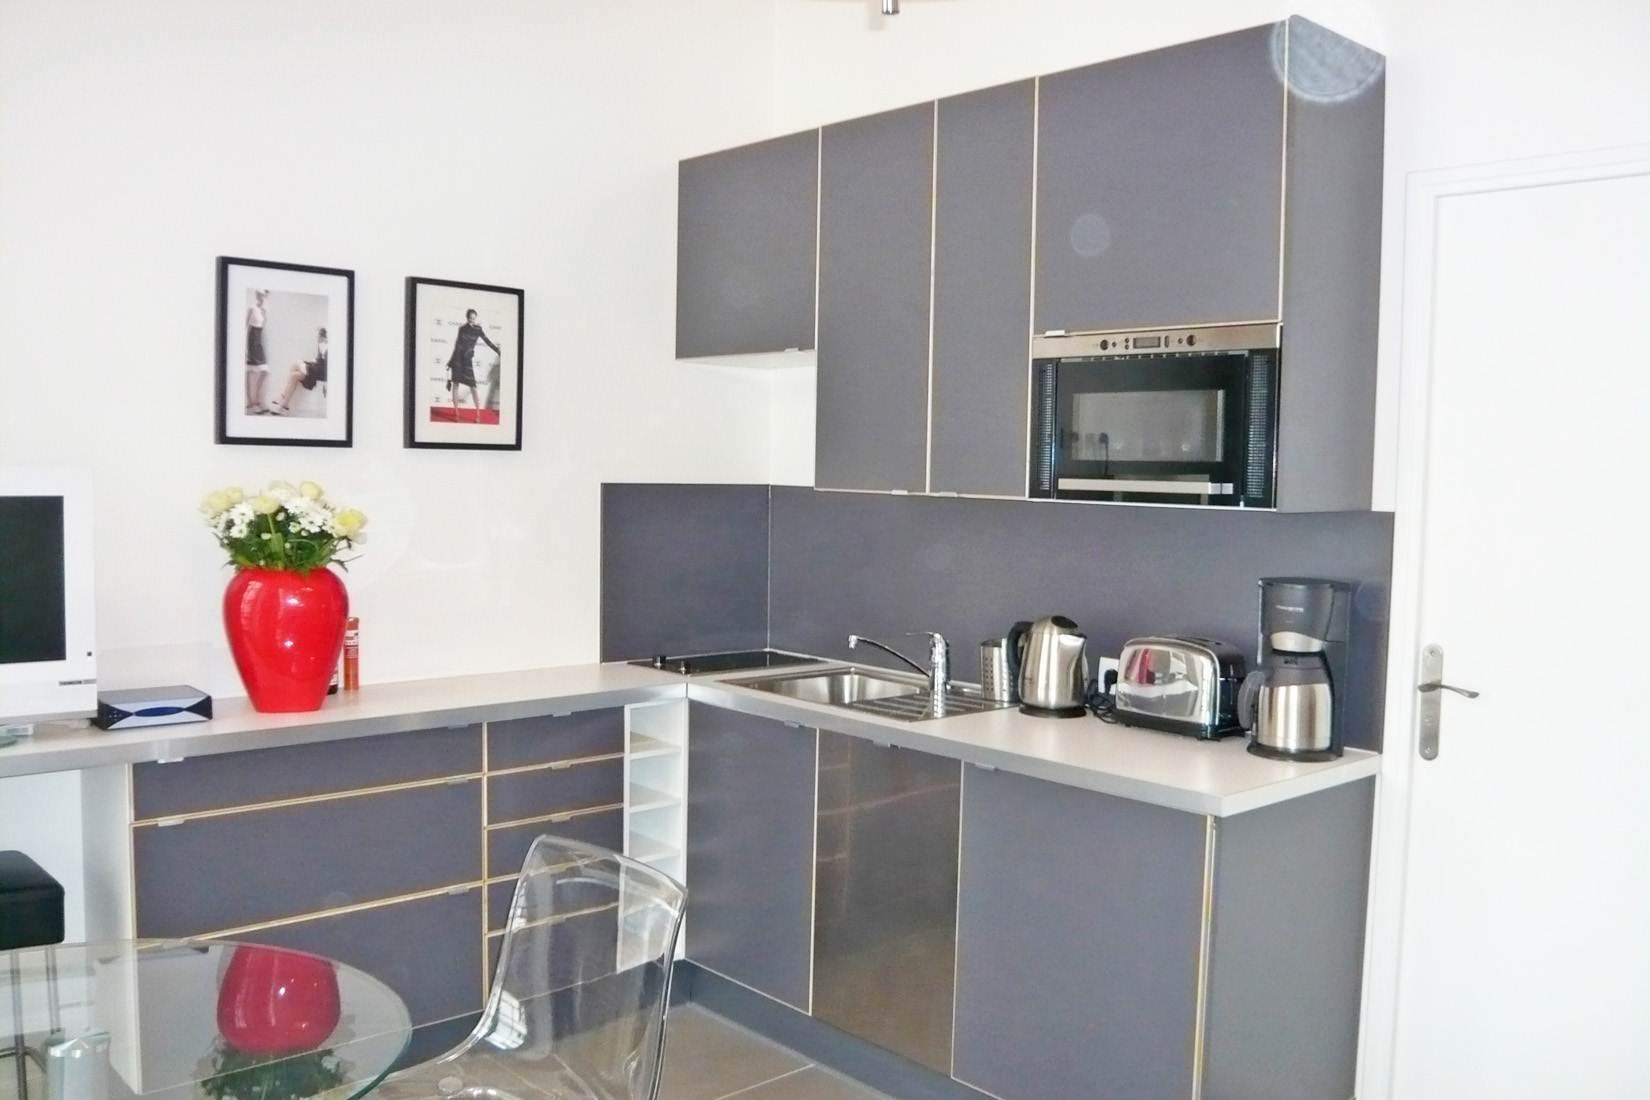 S02925 - Modern studio for 2 people near Les Halles